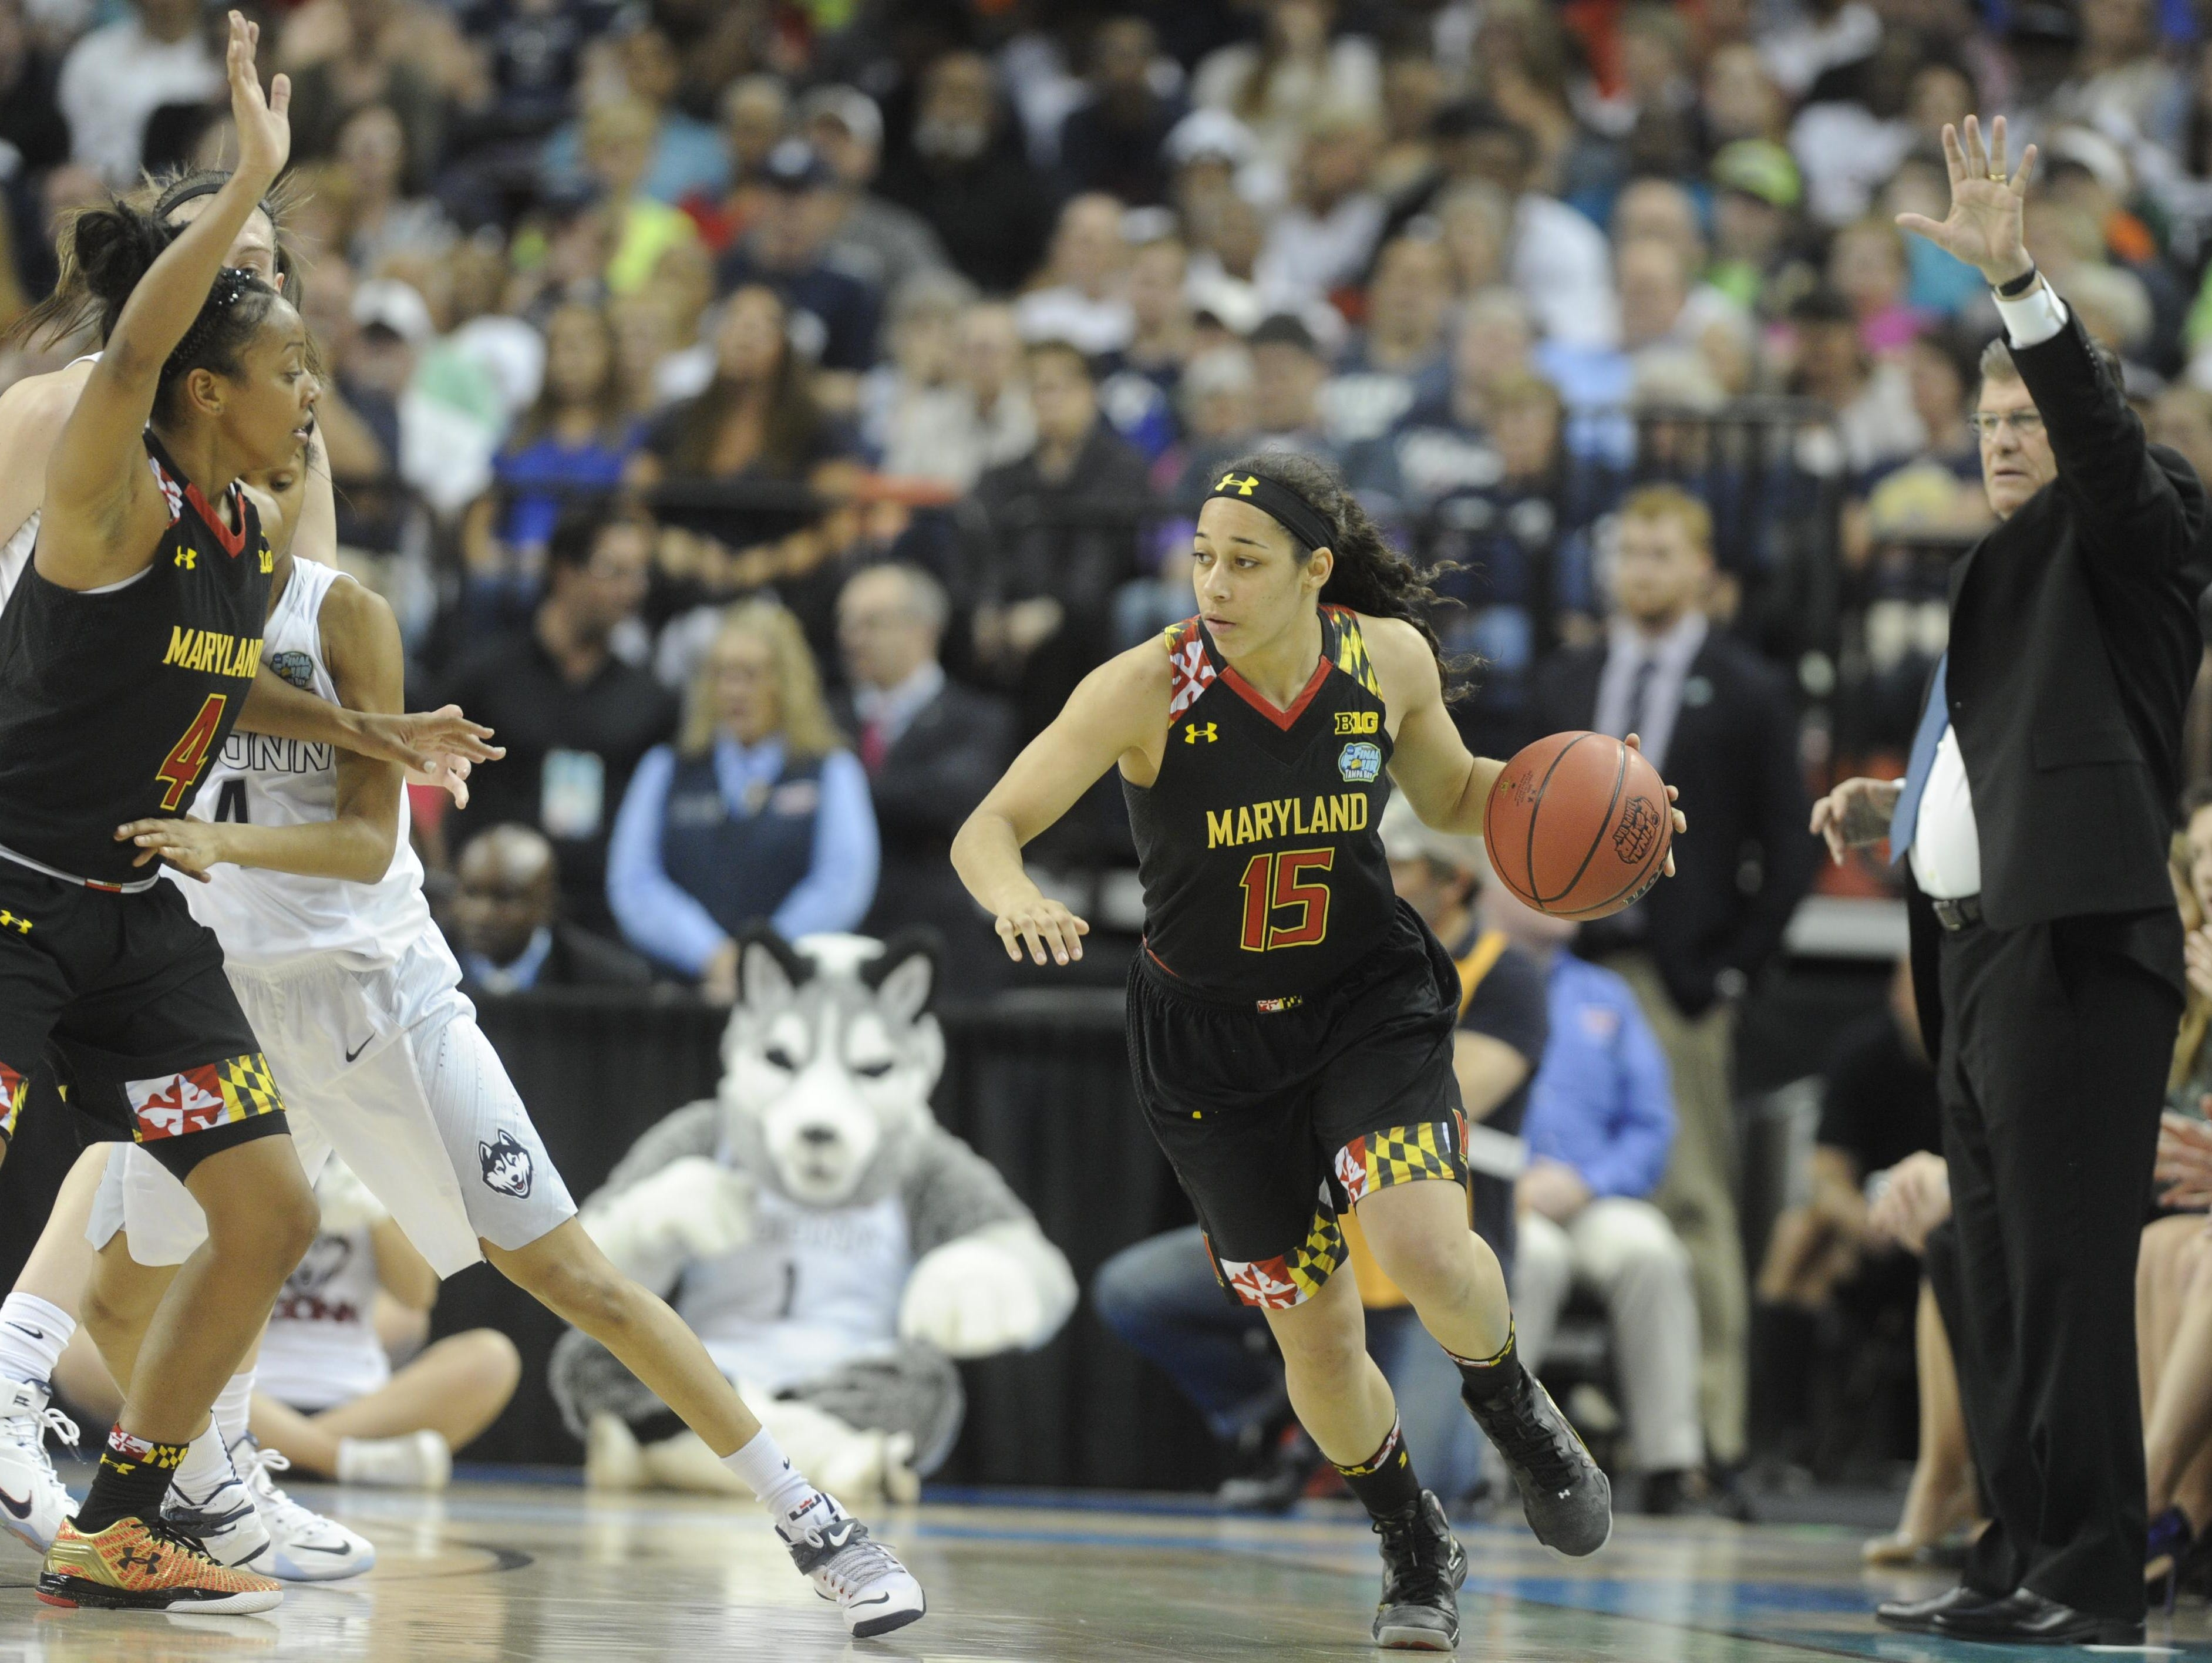 Sycamore 2012 grad Chloe Pavlech has been to a pair of national semifinals at the University of Maryland.